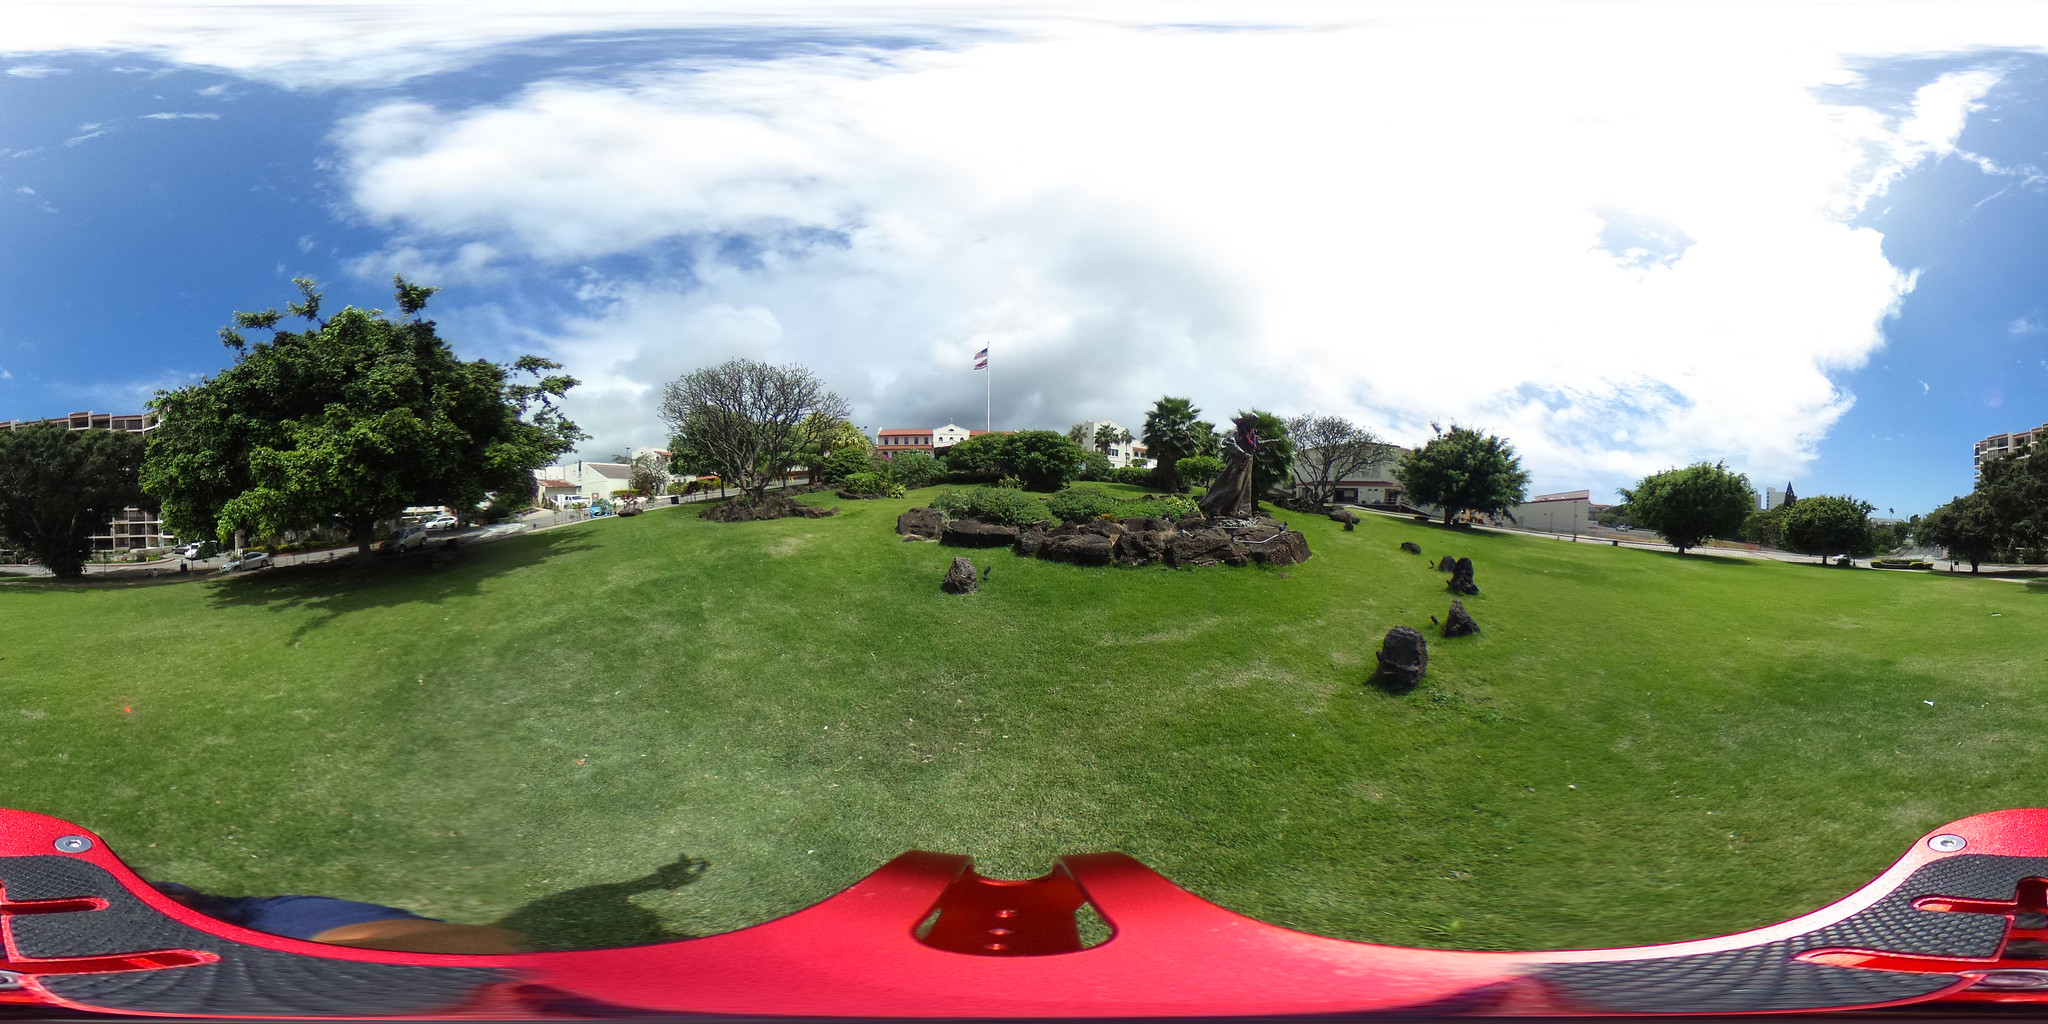 St. Louis High School and Chaminade University  - a 360° Equirectangular VR